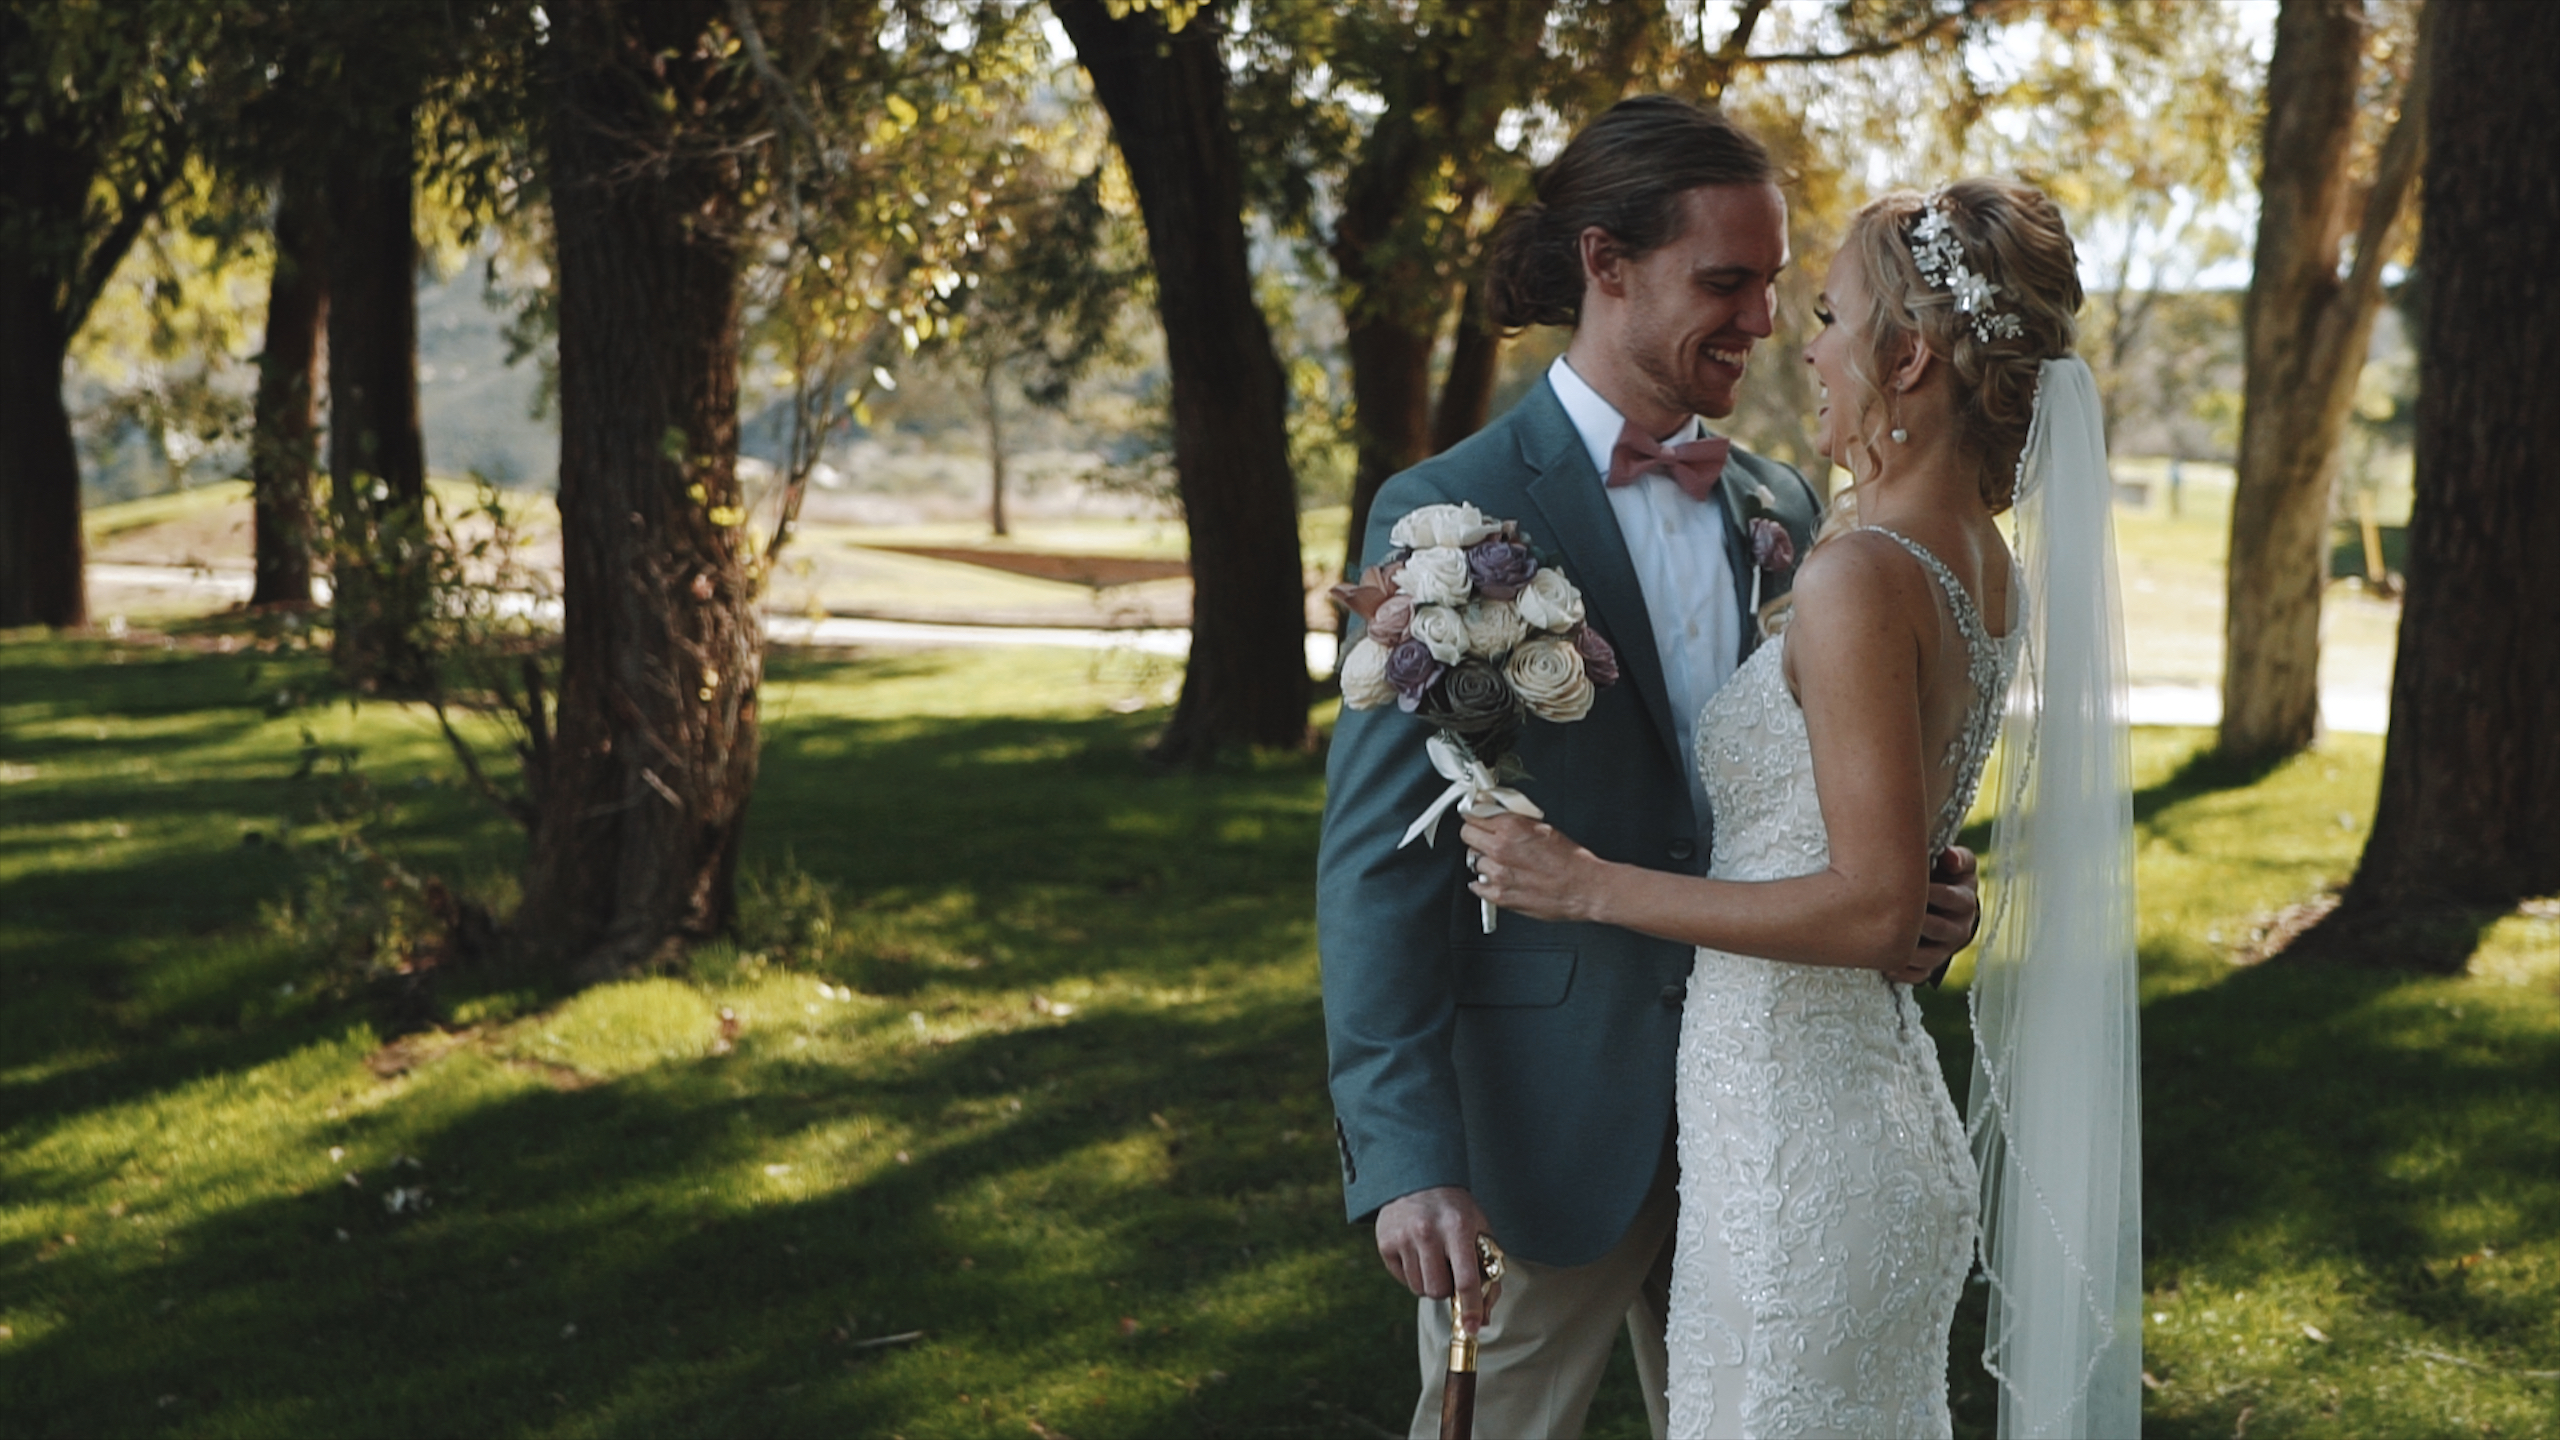 Kristi + David | Temecula, California | Temecula Creek Inn